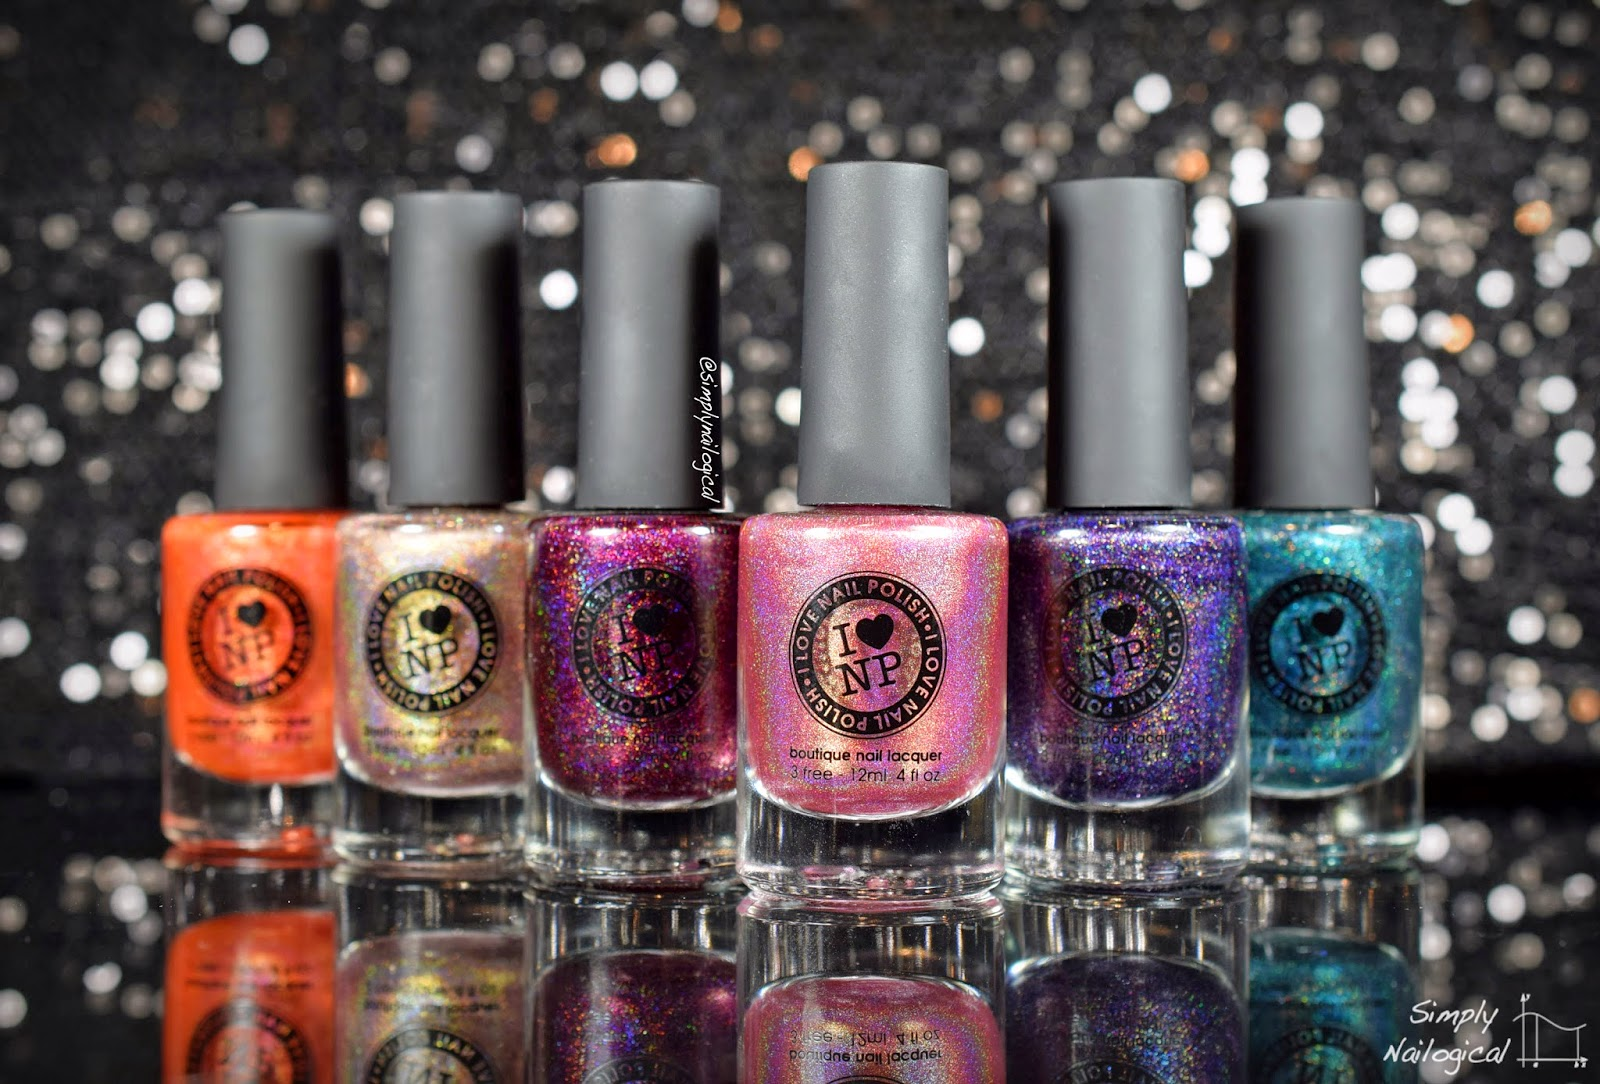 ILNP Fall 2014 collection holographic